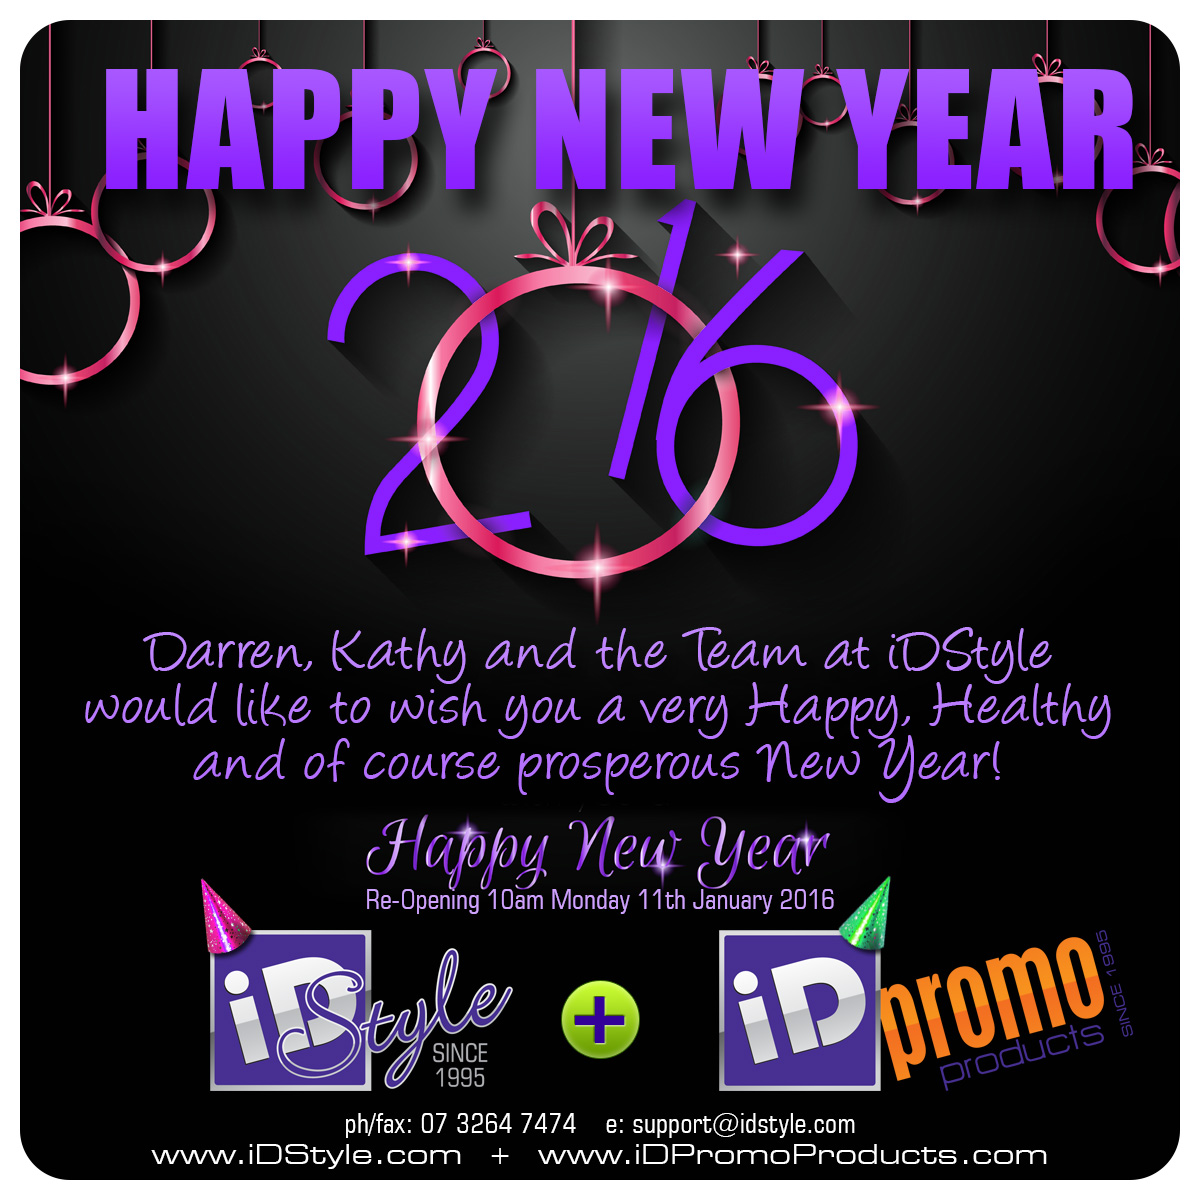 Happy New Year from iDStyle